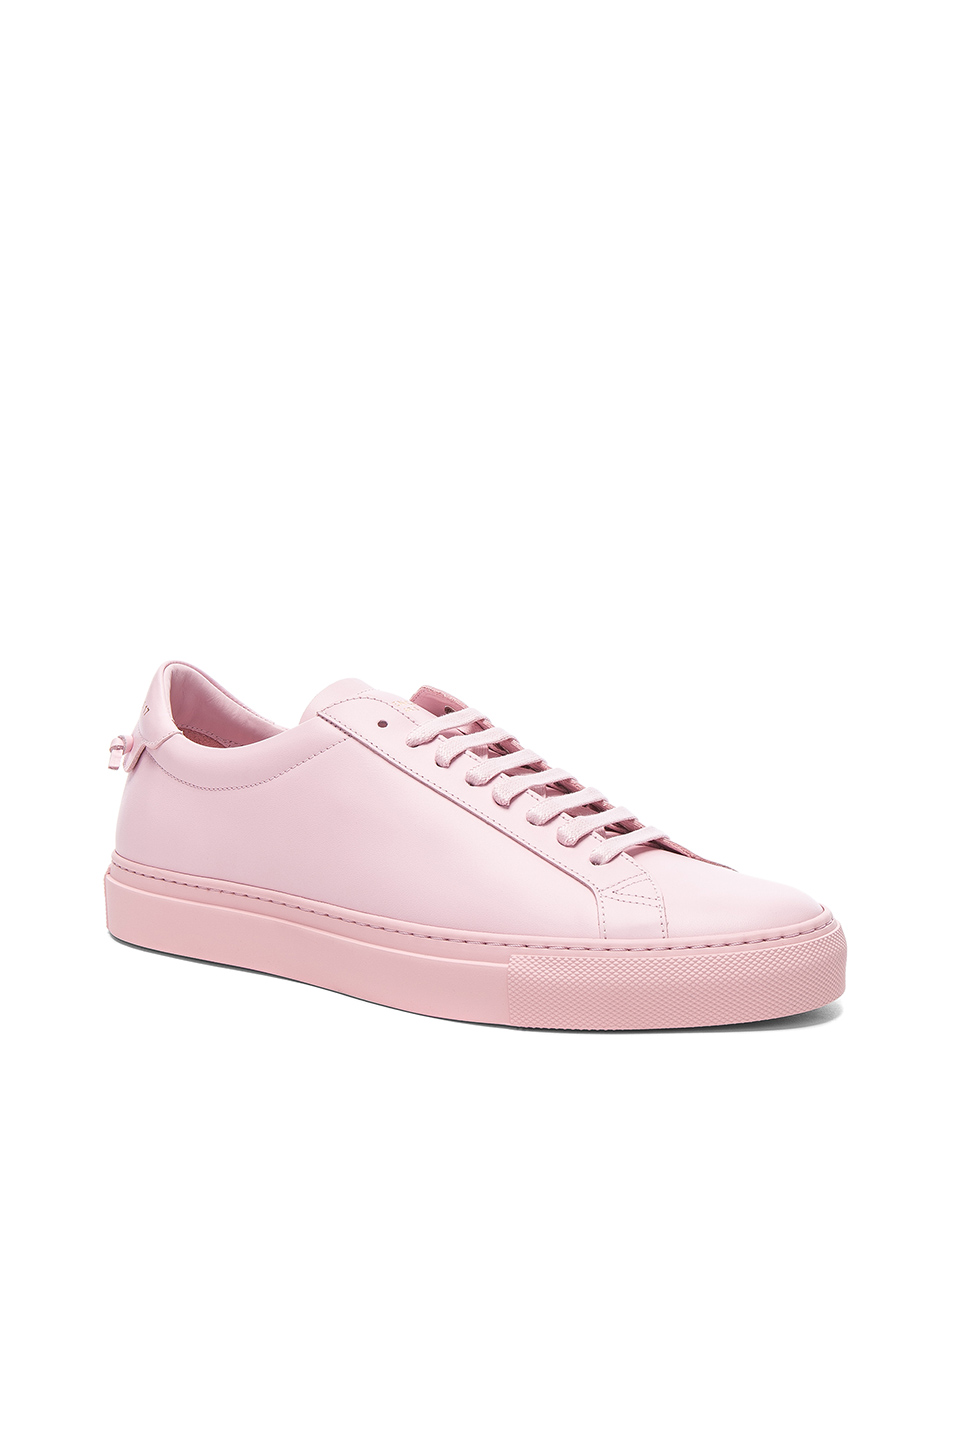 Givenchy Leather Urban Tie Knot Sneakers in Pink